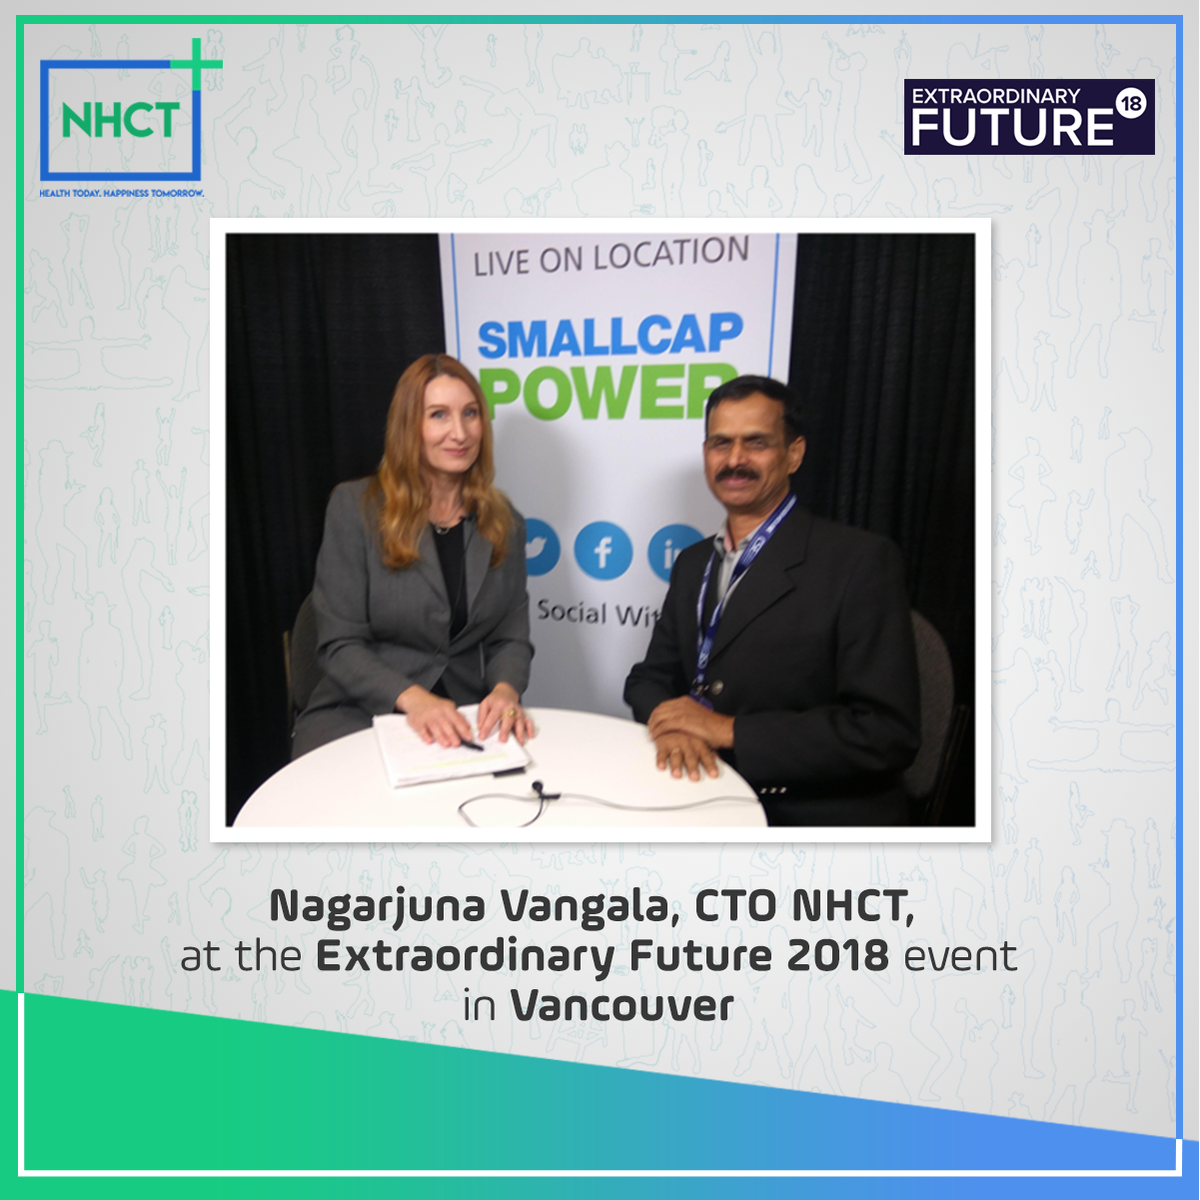 Extraordinary Future 2018 showcases the Hottest Tech Investment Opportunities in Canada.  Nagarjuna Vangala, CTO #NHCT was interviewed on location to tell the world about the extraordinary future of #Healthcare on #blockchain. #crypto #nanohealth #ethereum #ico<br>http://pic.twitter.com/c1EhohKOZH